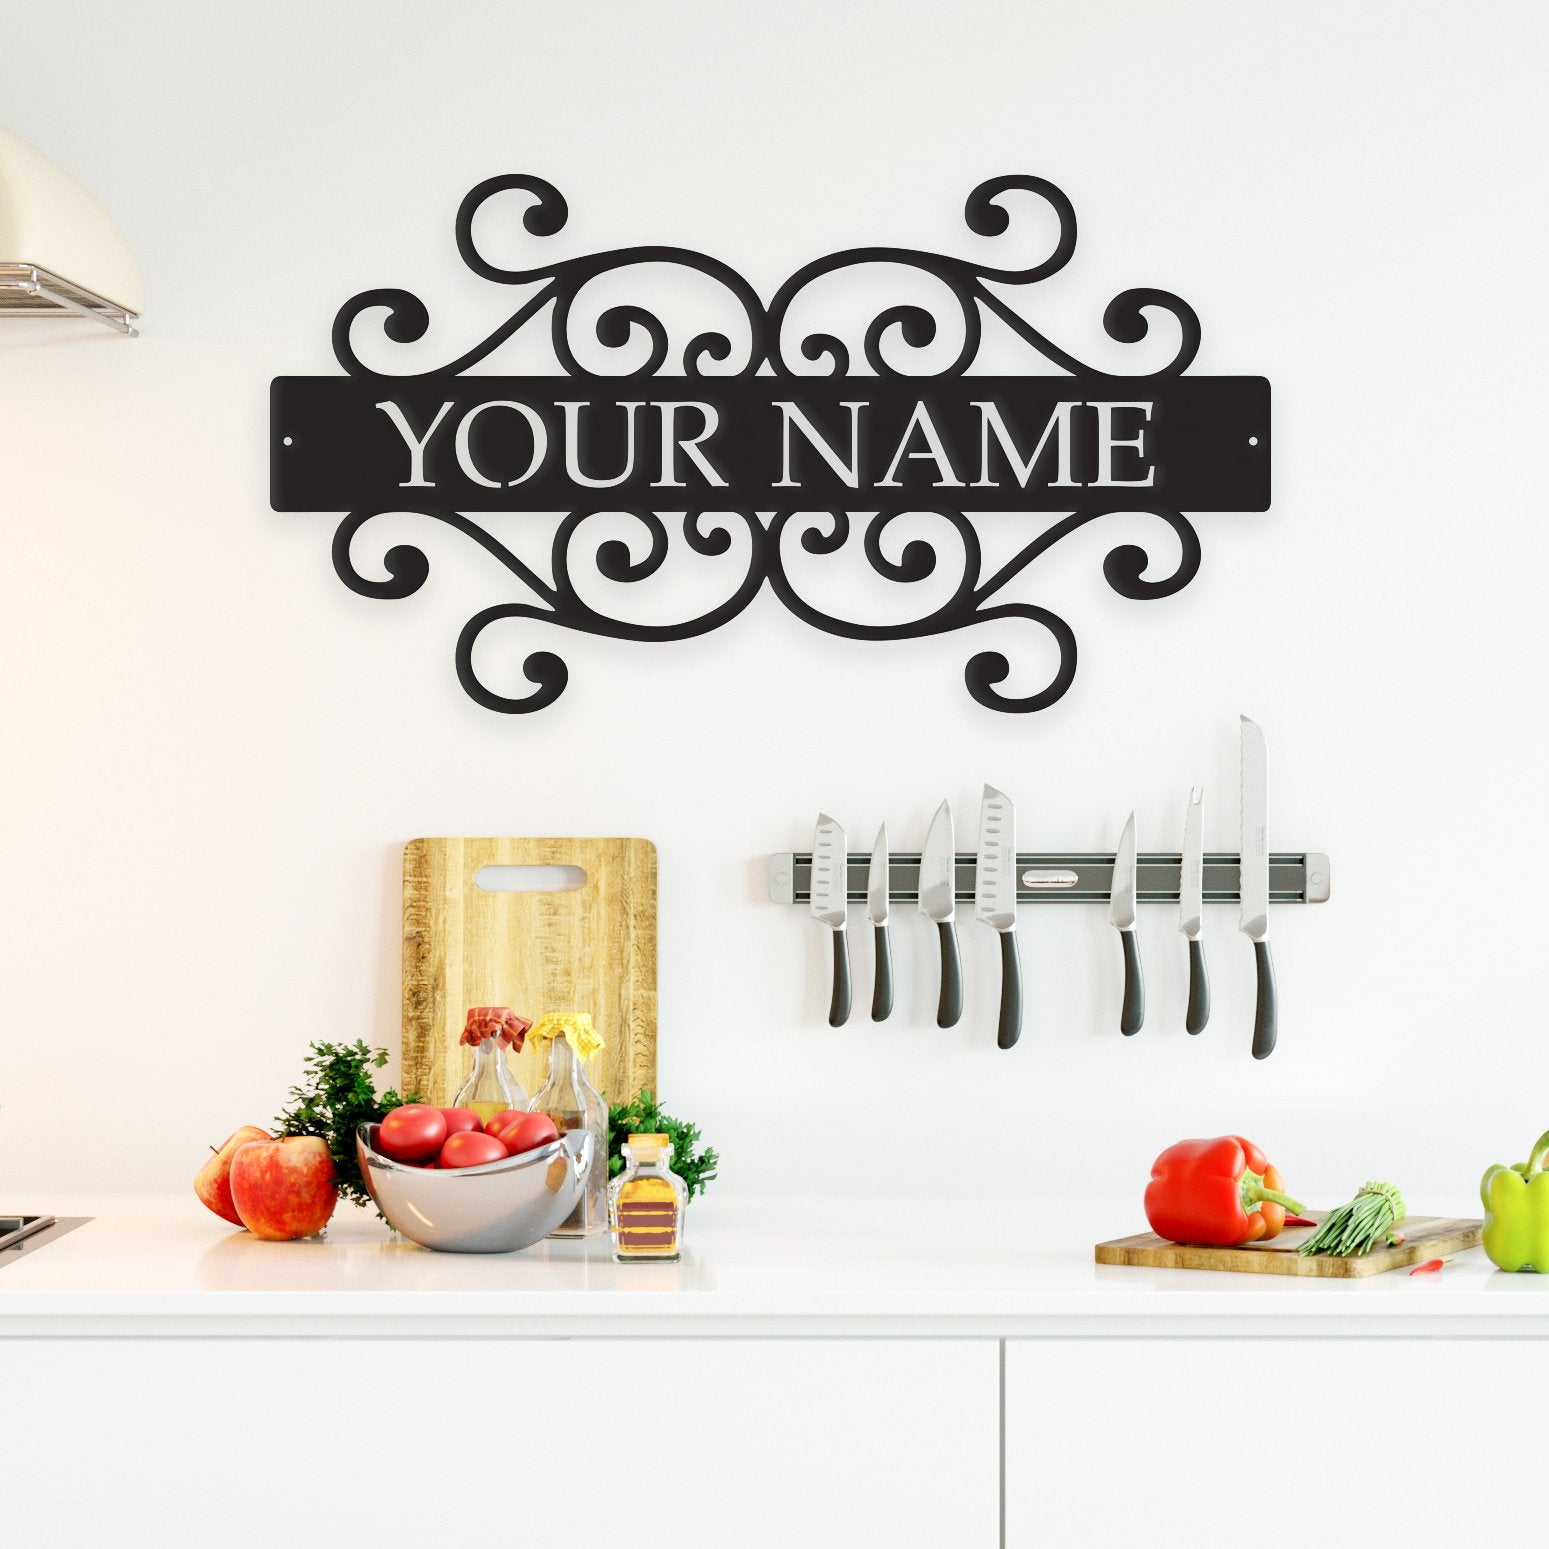 Family Name - Metal Wall Art Decor